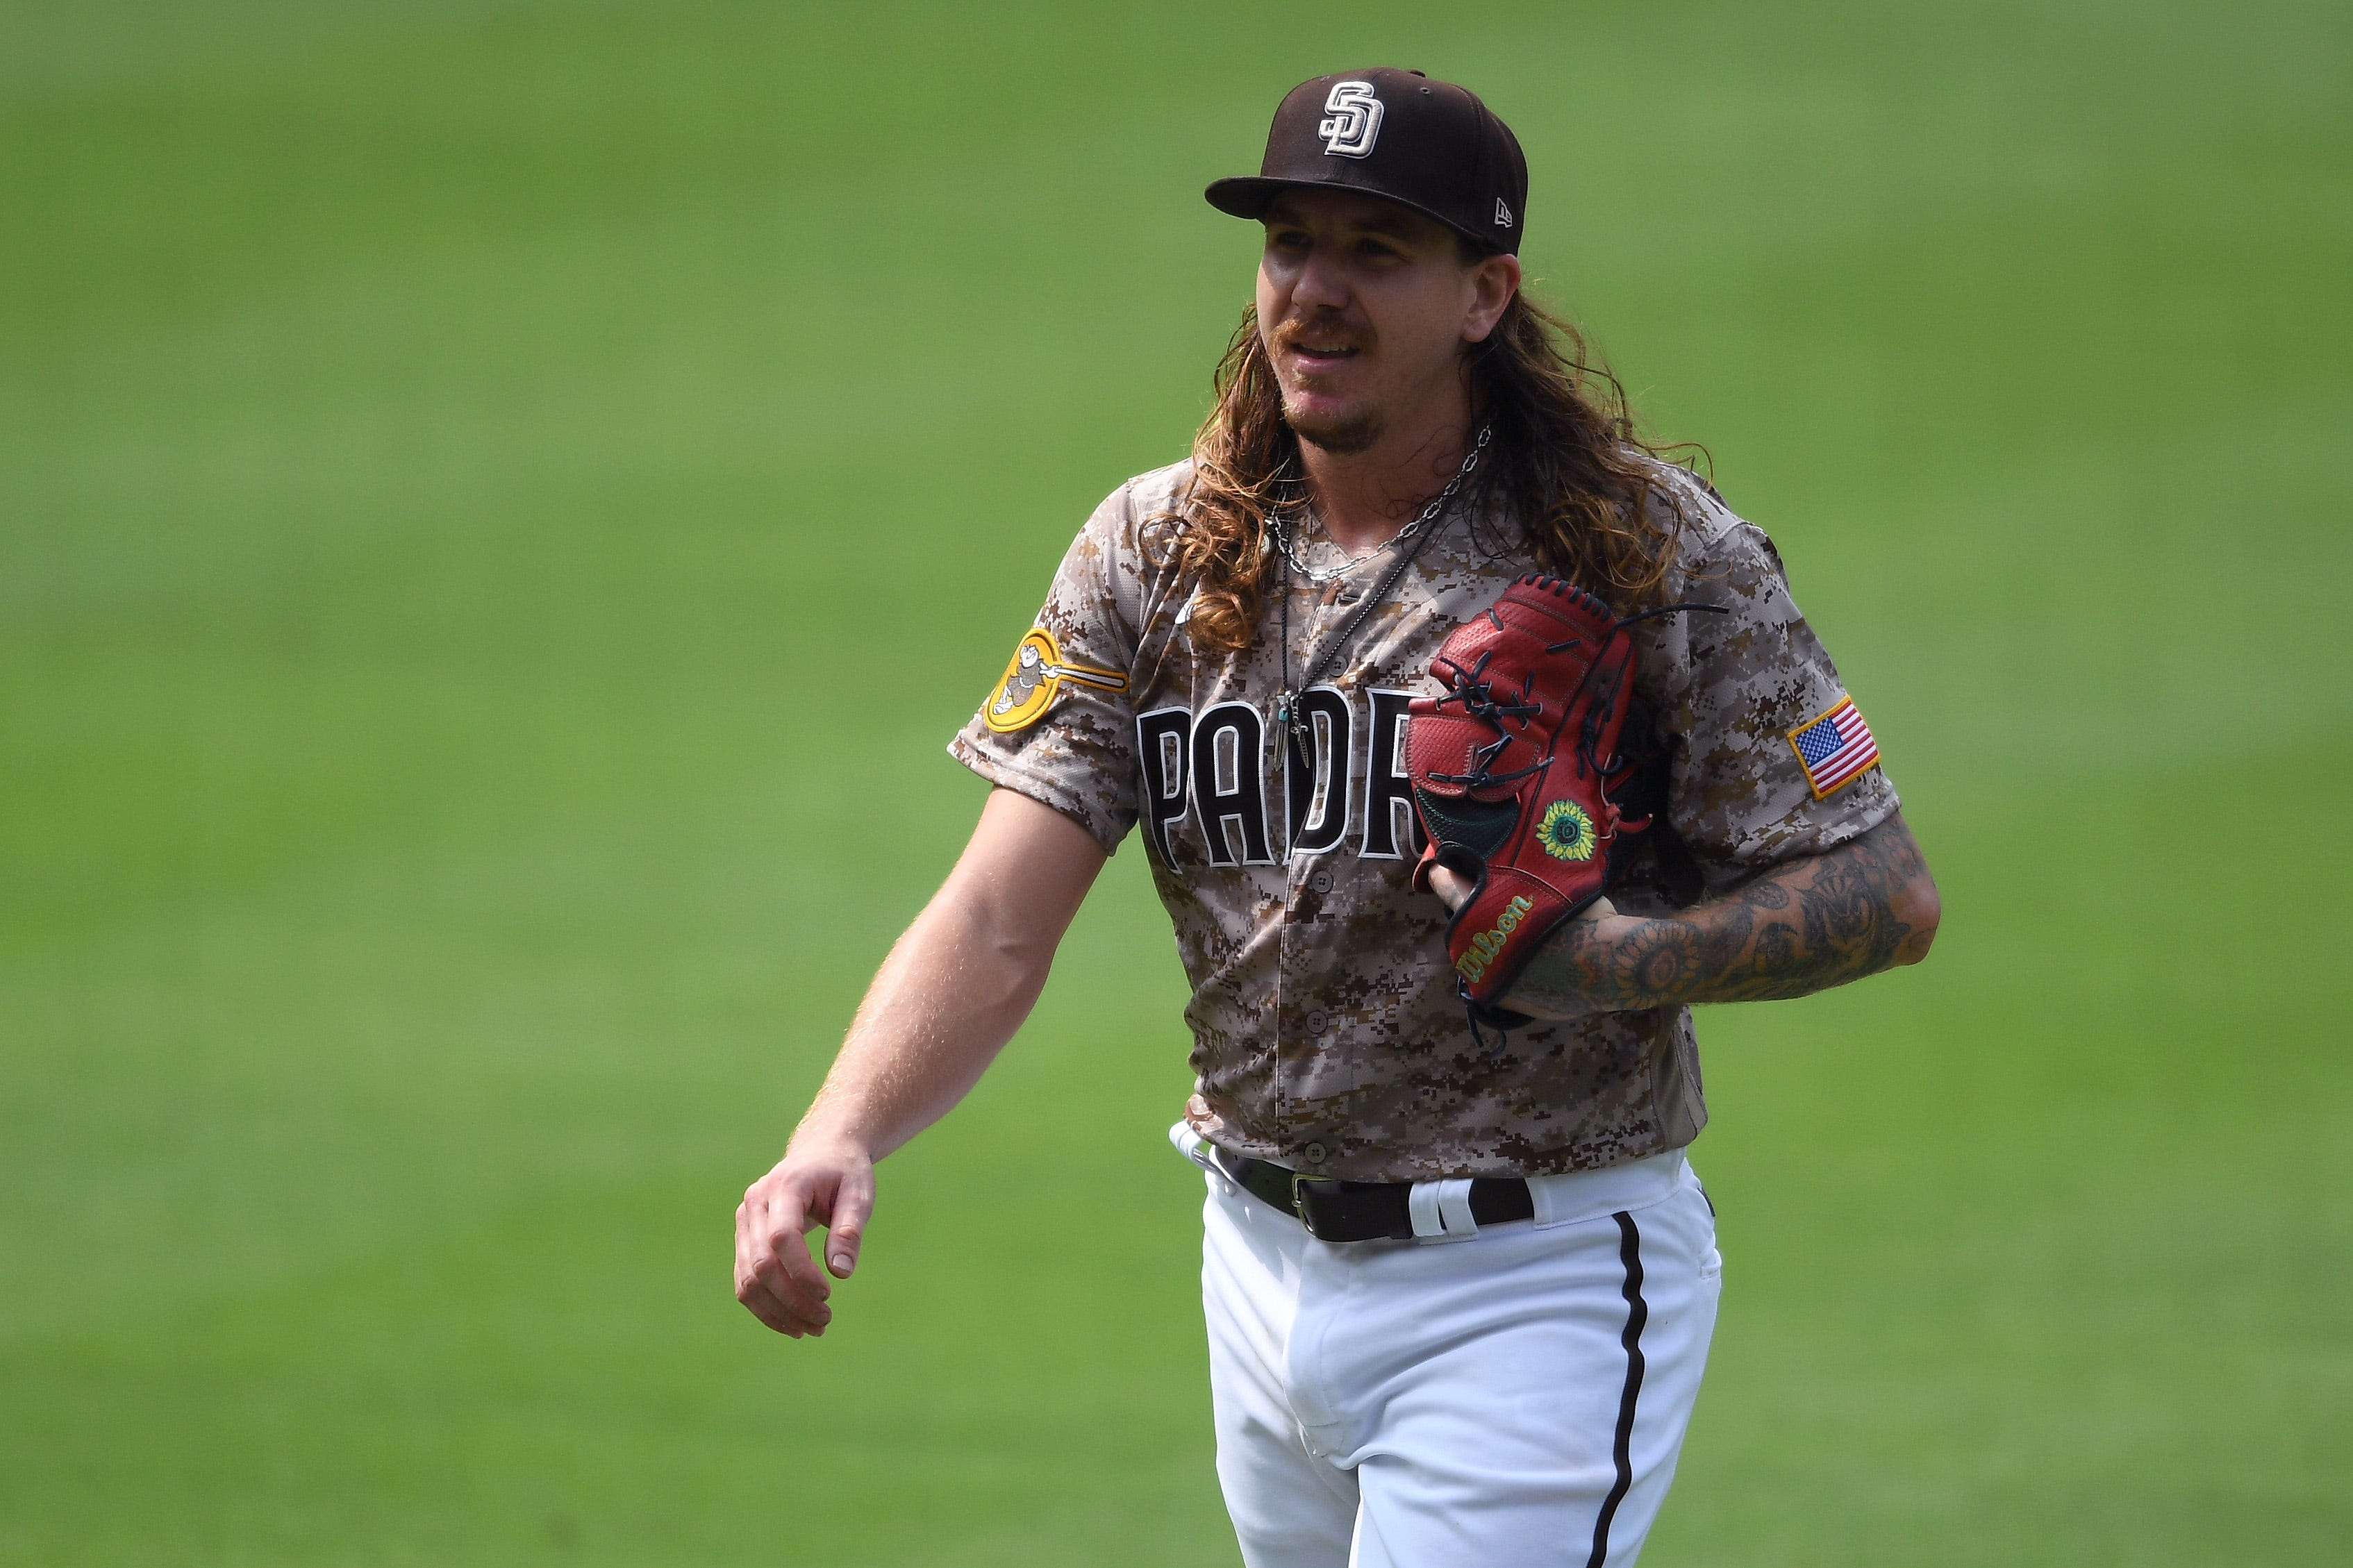 Padres' top pitchers Mike Clevinger and Dinelson Lamet left off roster vs. Cardinals due to injury